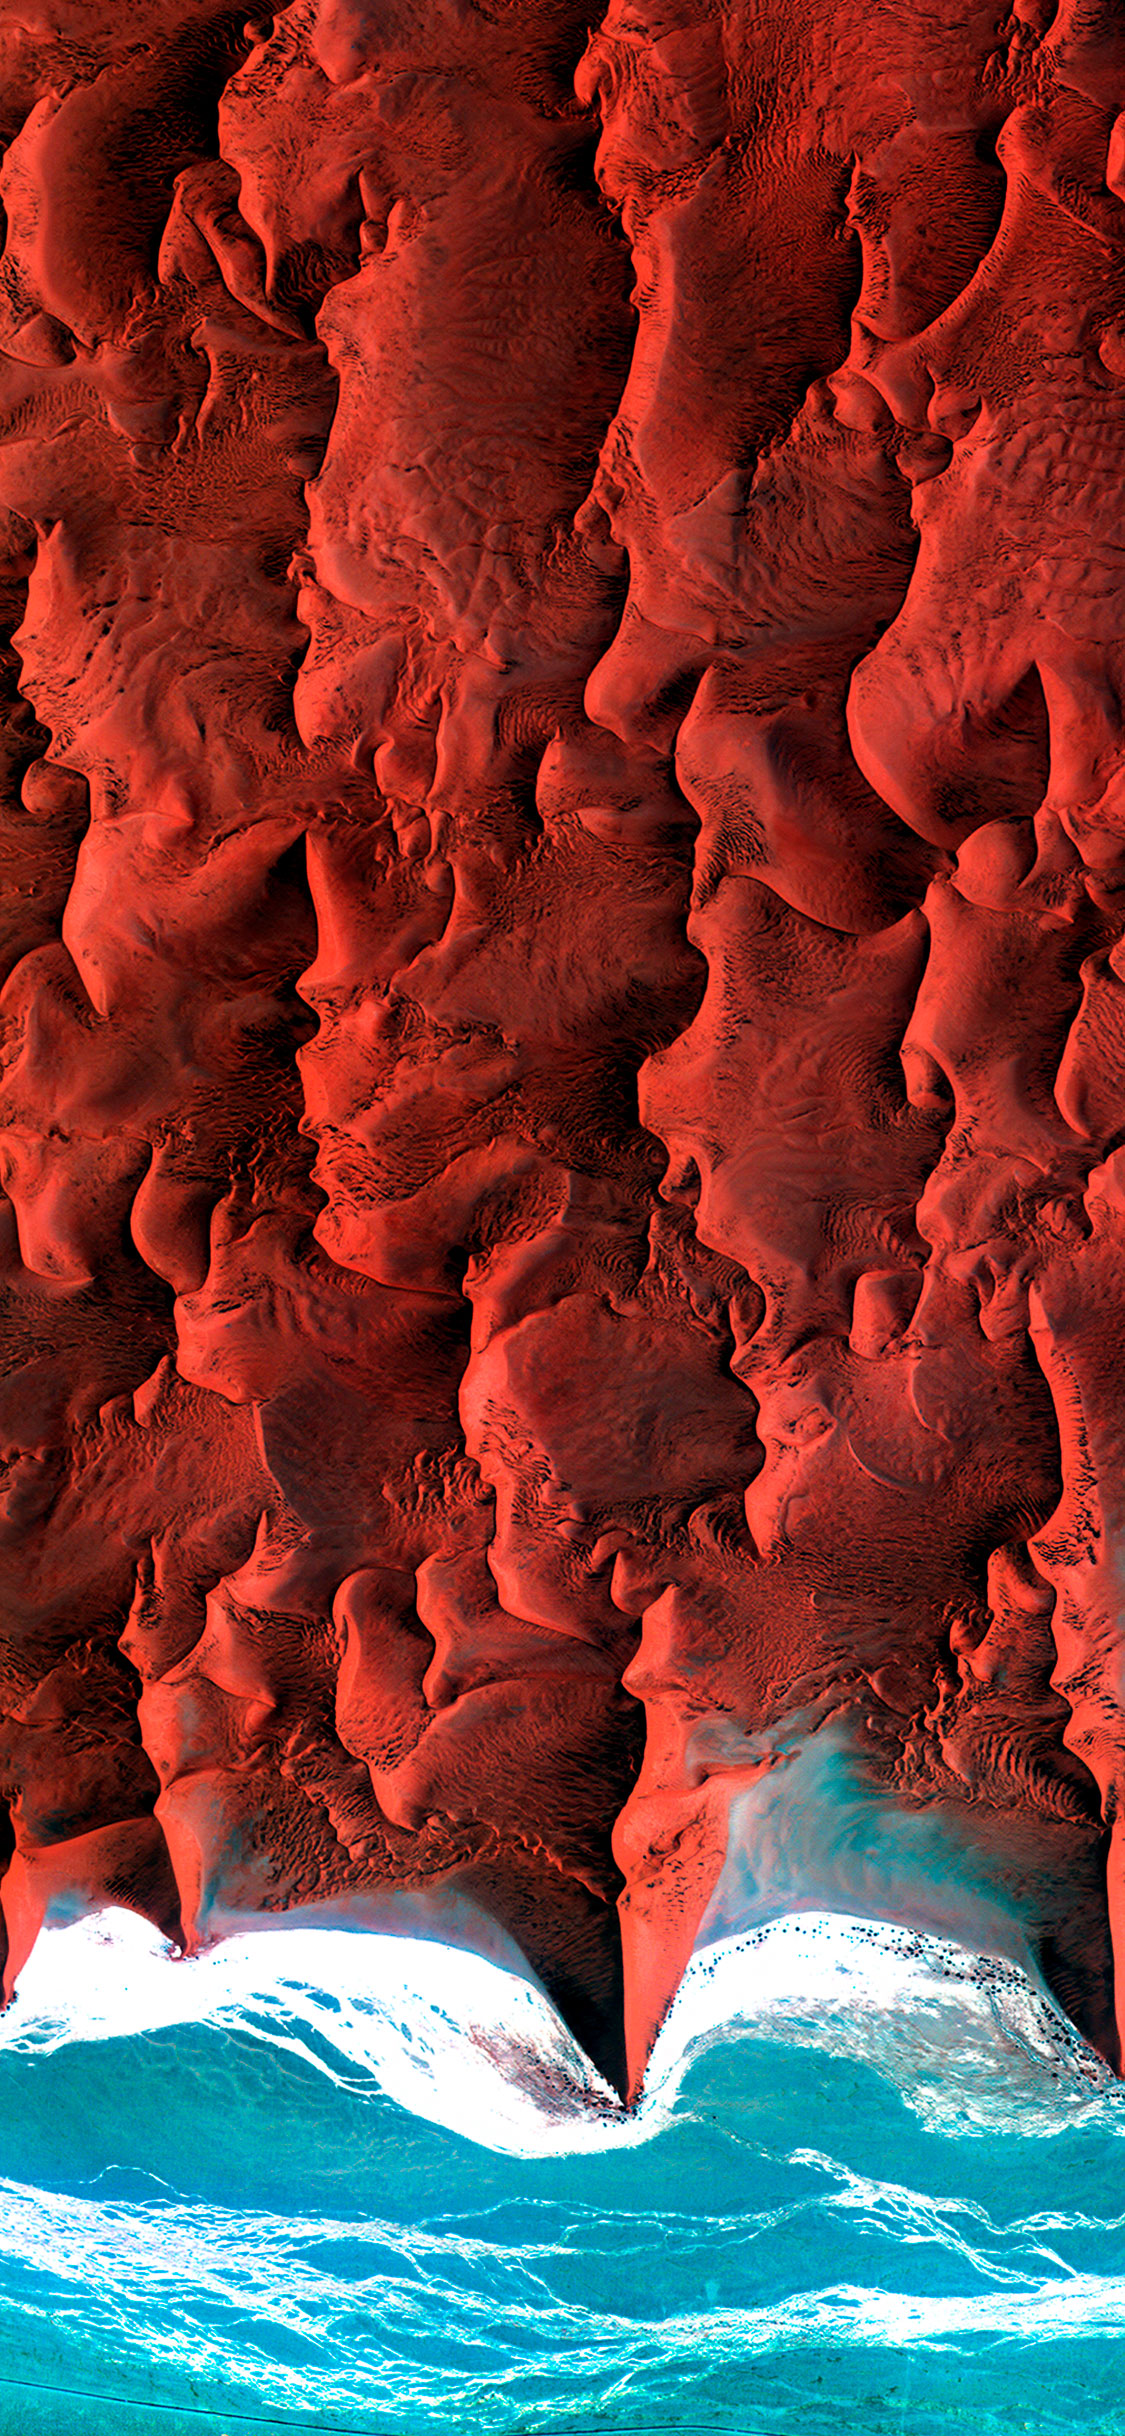 iPhone wallpaper namib desert Fonds d'écran iPhone du 23/05/2018